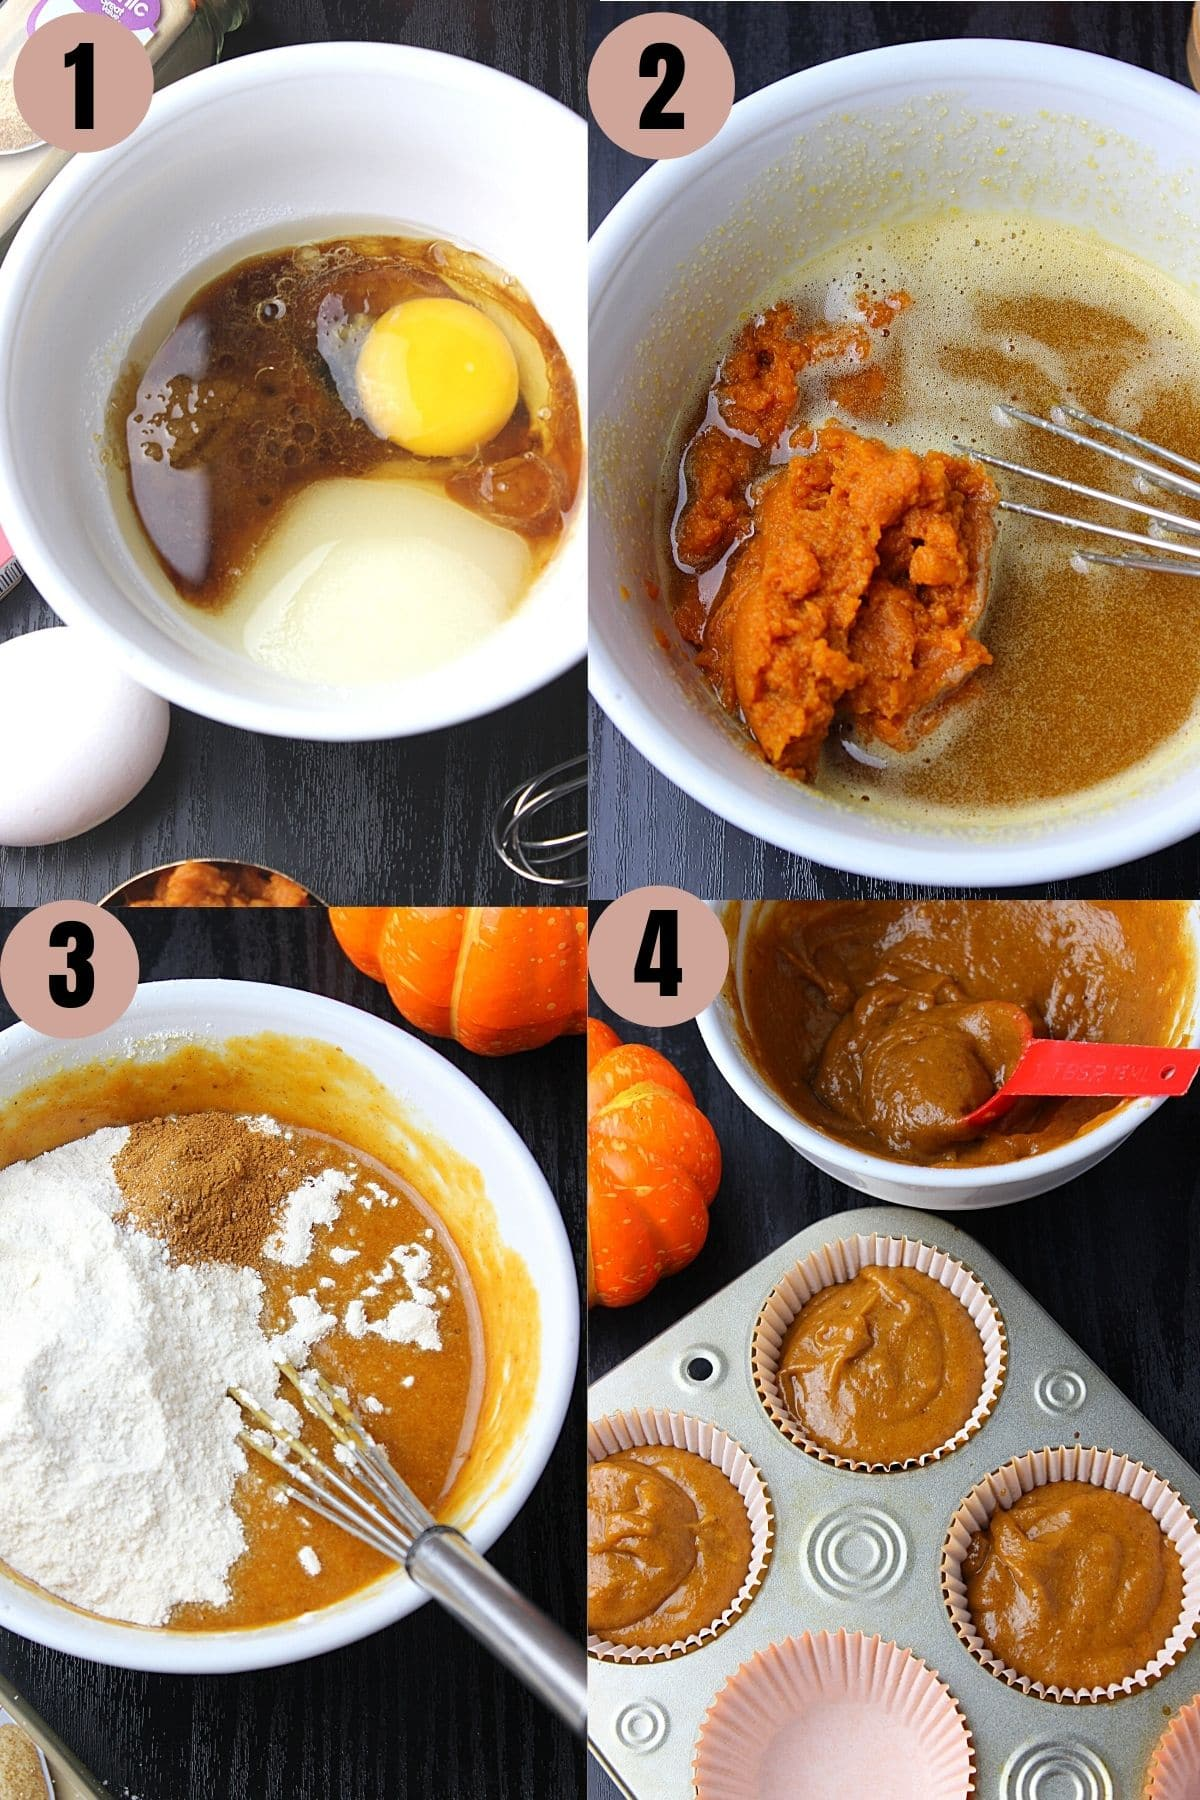 Process to make pumpkin cupcakes by mixing wet ingredients together then adding dry to make batter.